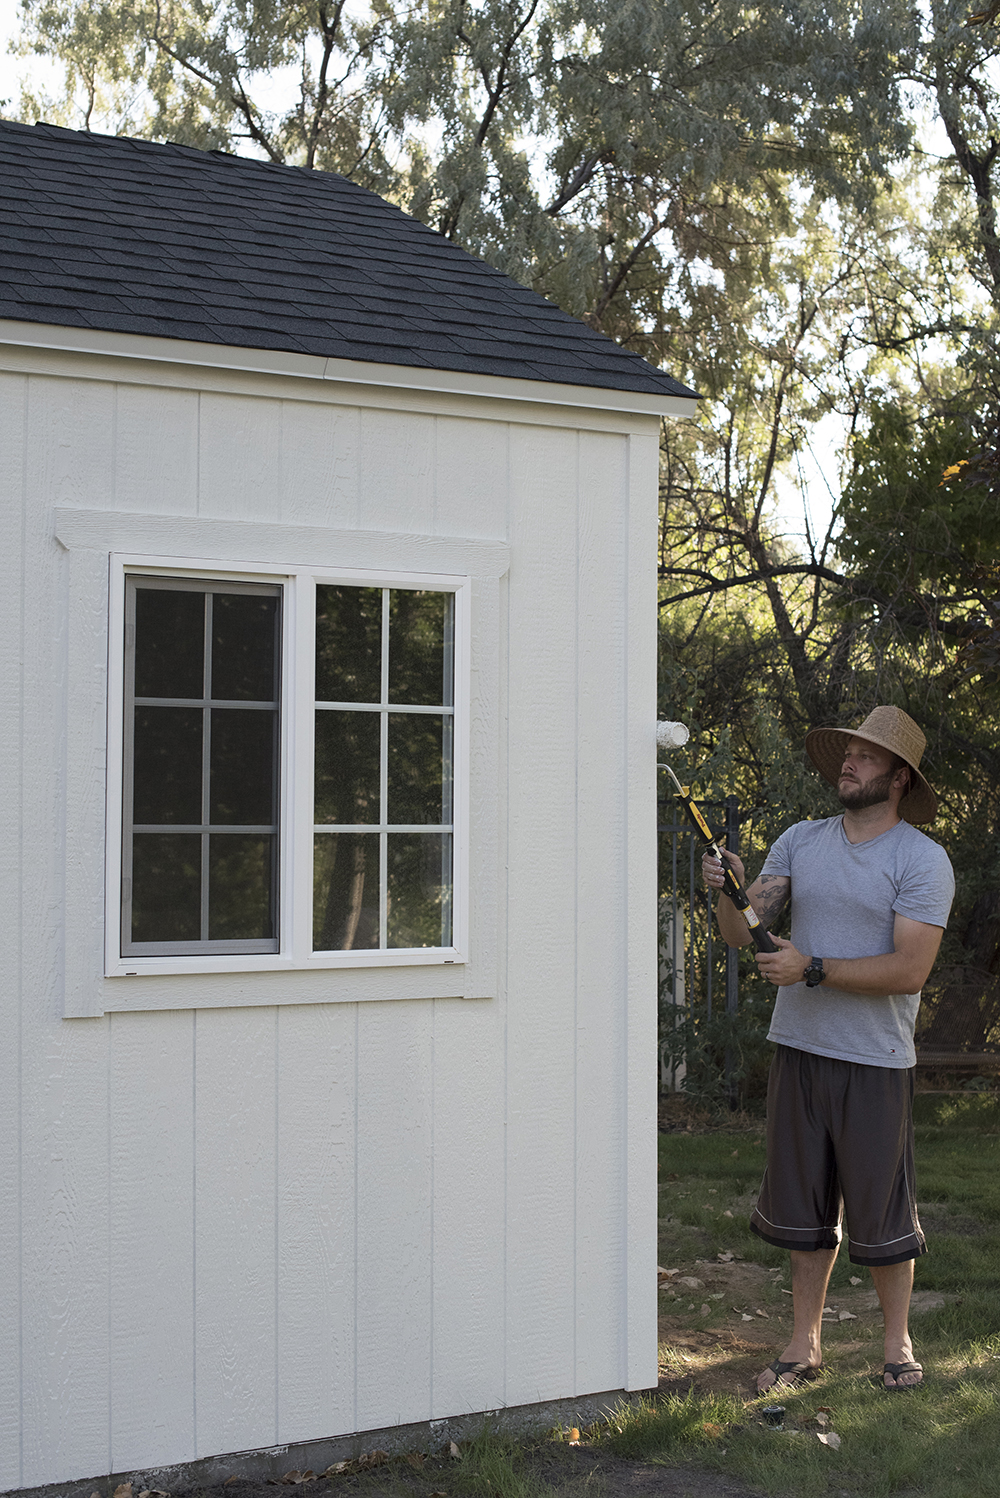 The Shed Reveal - roomfortuesday.com